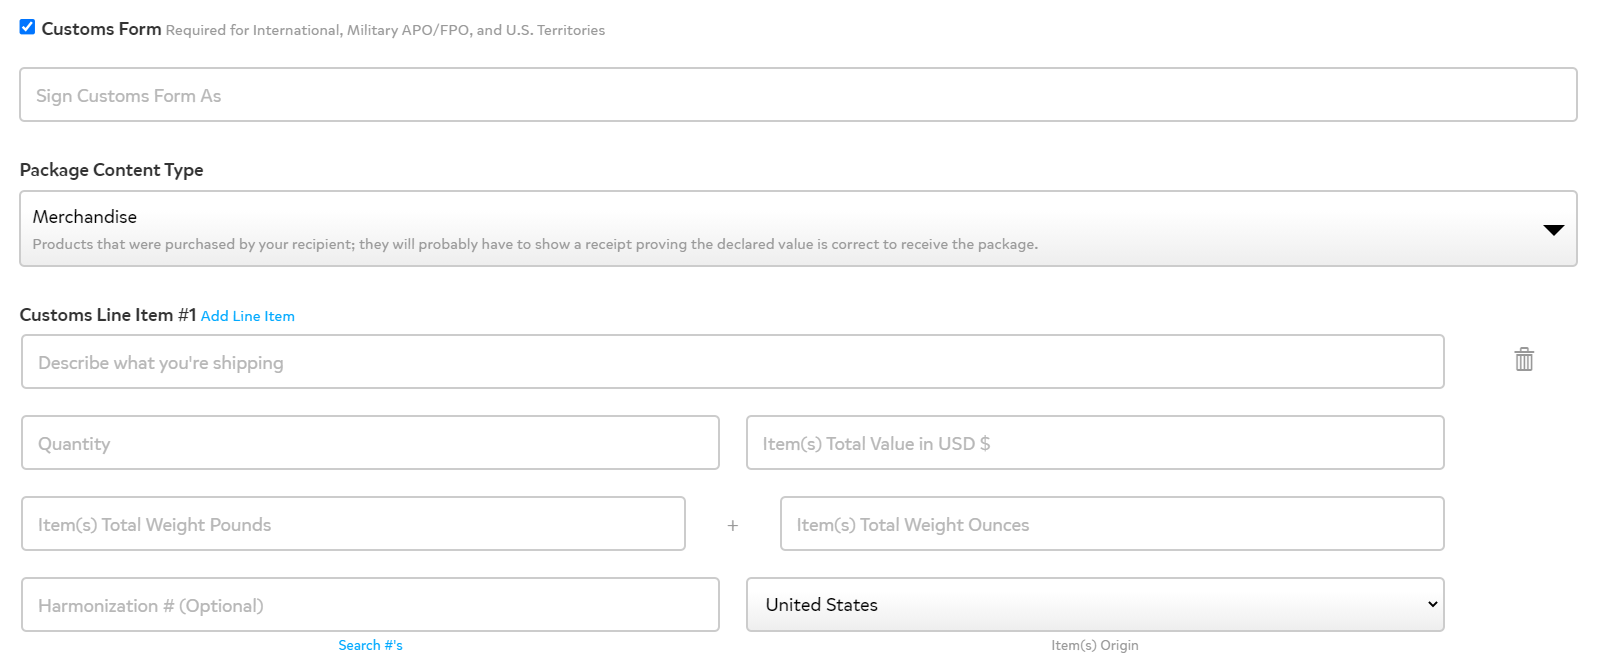 International shipping custom form page showing to enter what's in the package, quantity, value, exact weight, harmonization number, country of origin